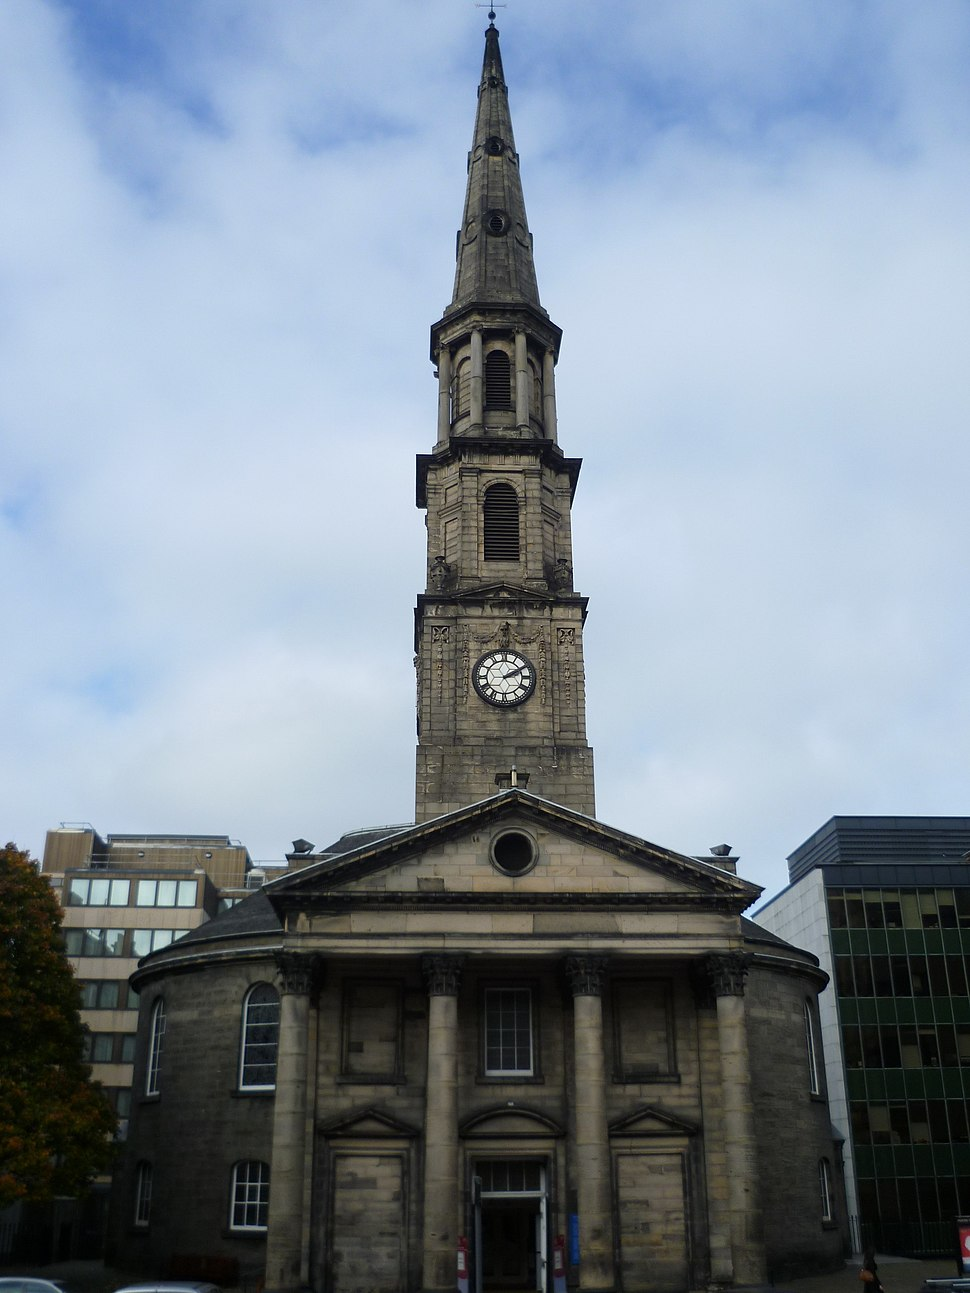 St. Andrew's Church, George Street Edinburgh